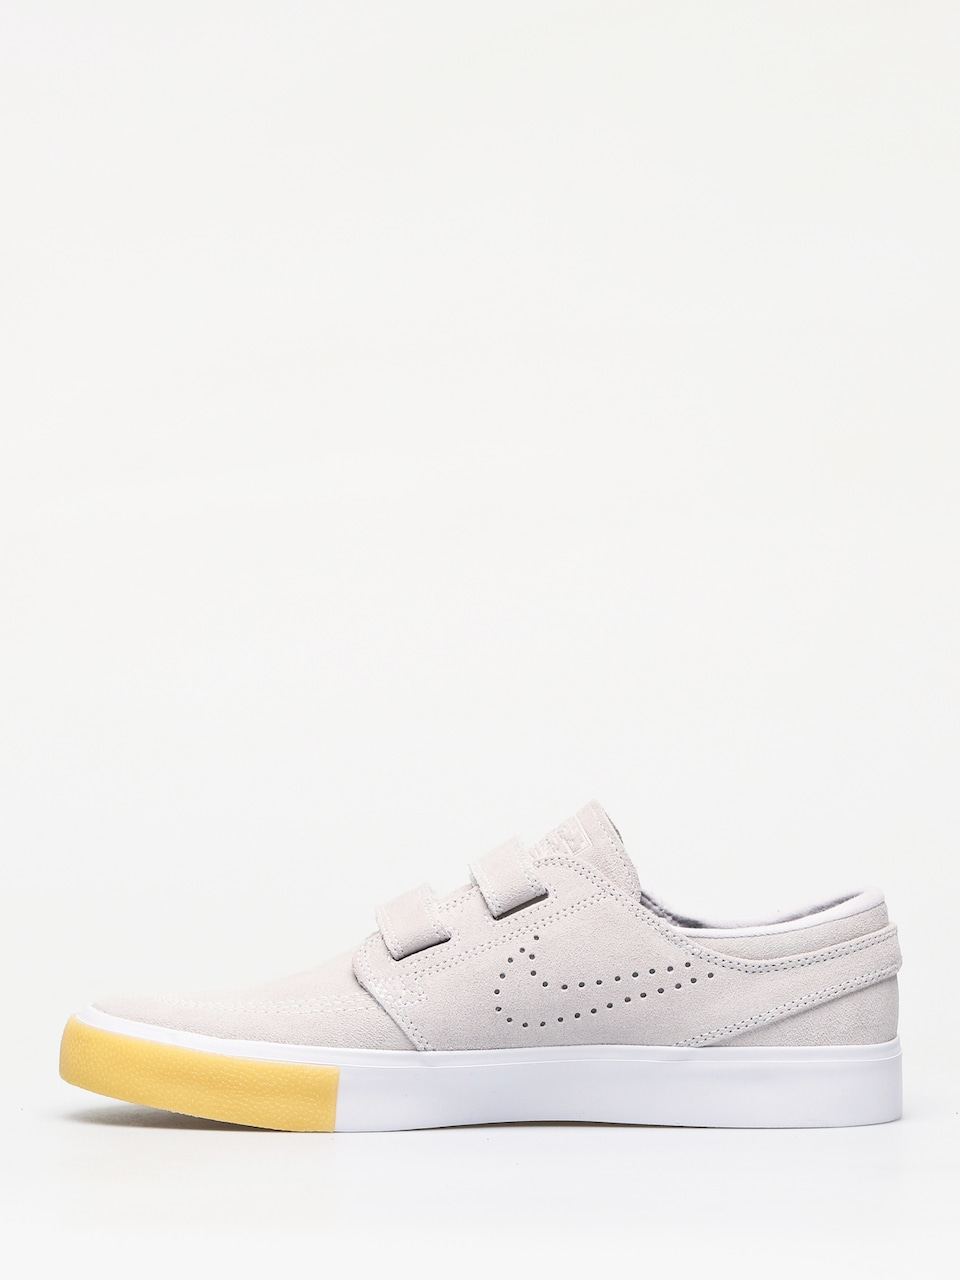 Real cooperar estéreo  Nike SB Zoom Janoski Ac Rm Se Shoes (white/white vast grey gum yellow)